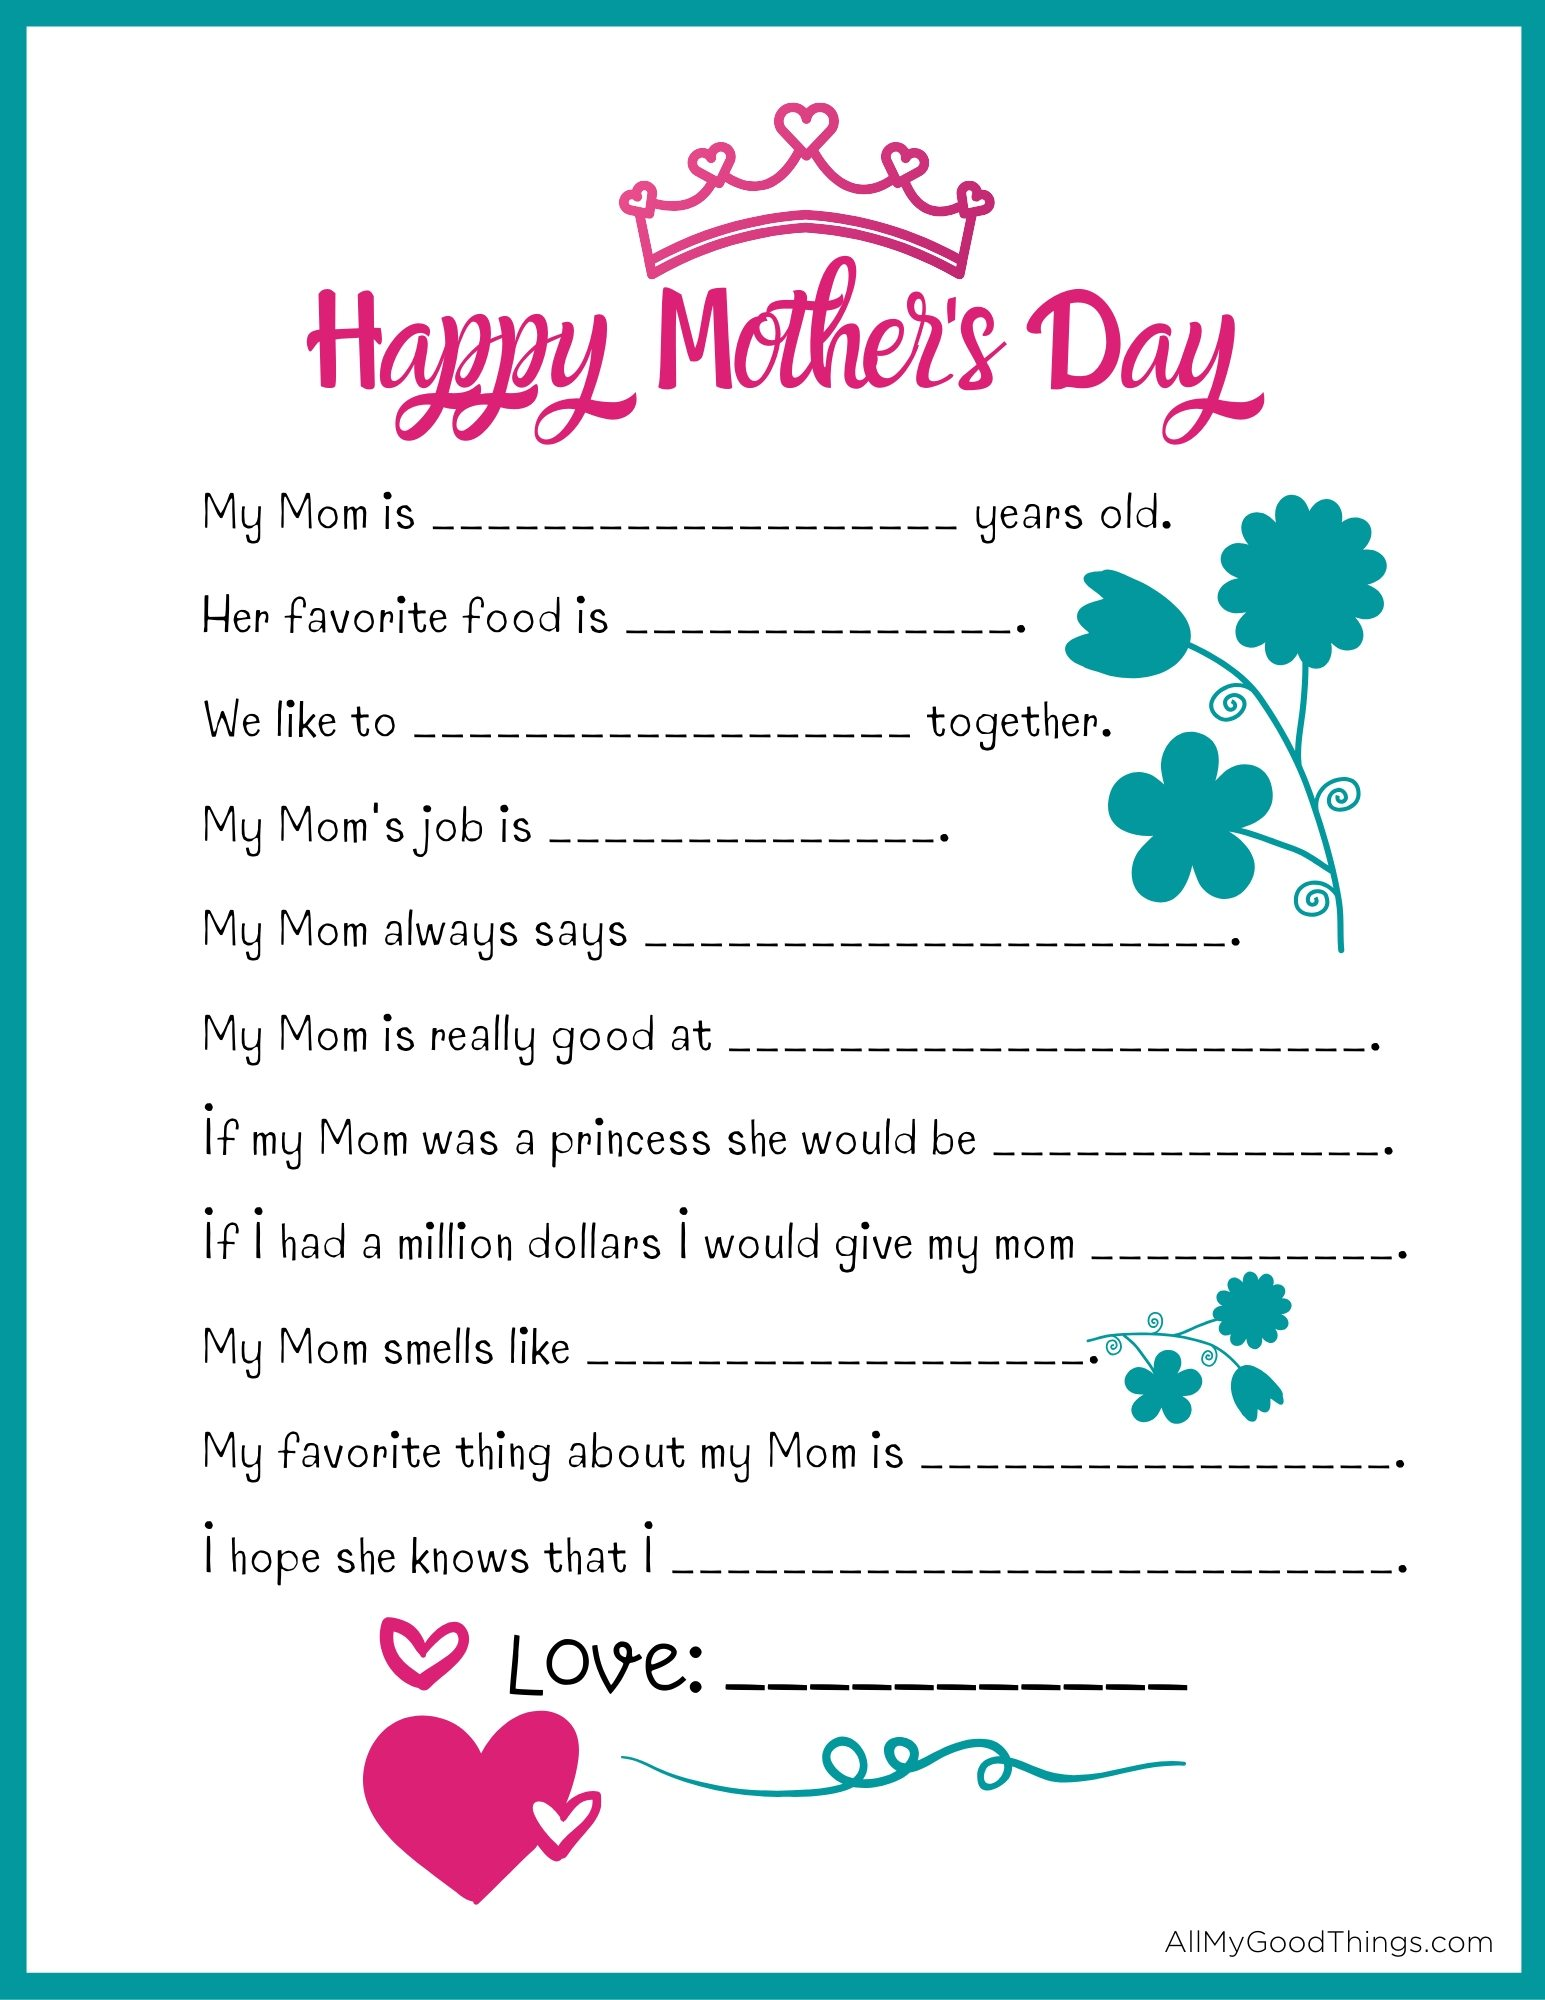 FREE Mother's Day Questionnaire Printable